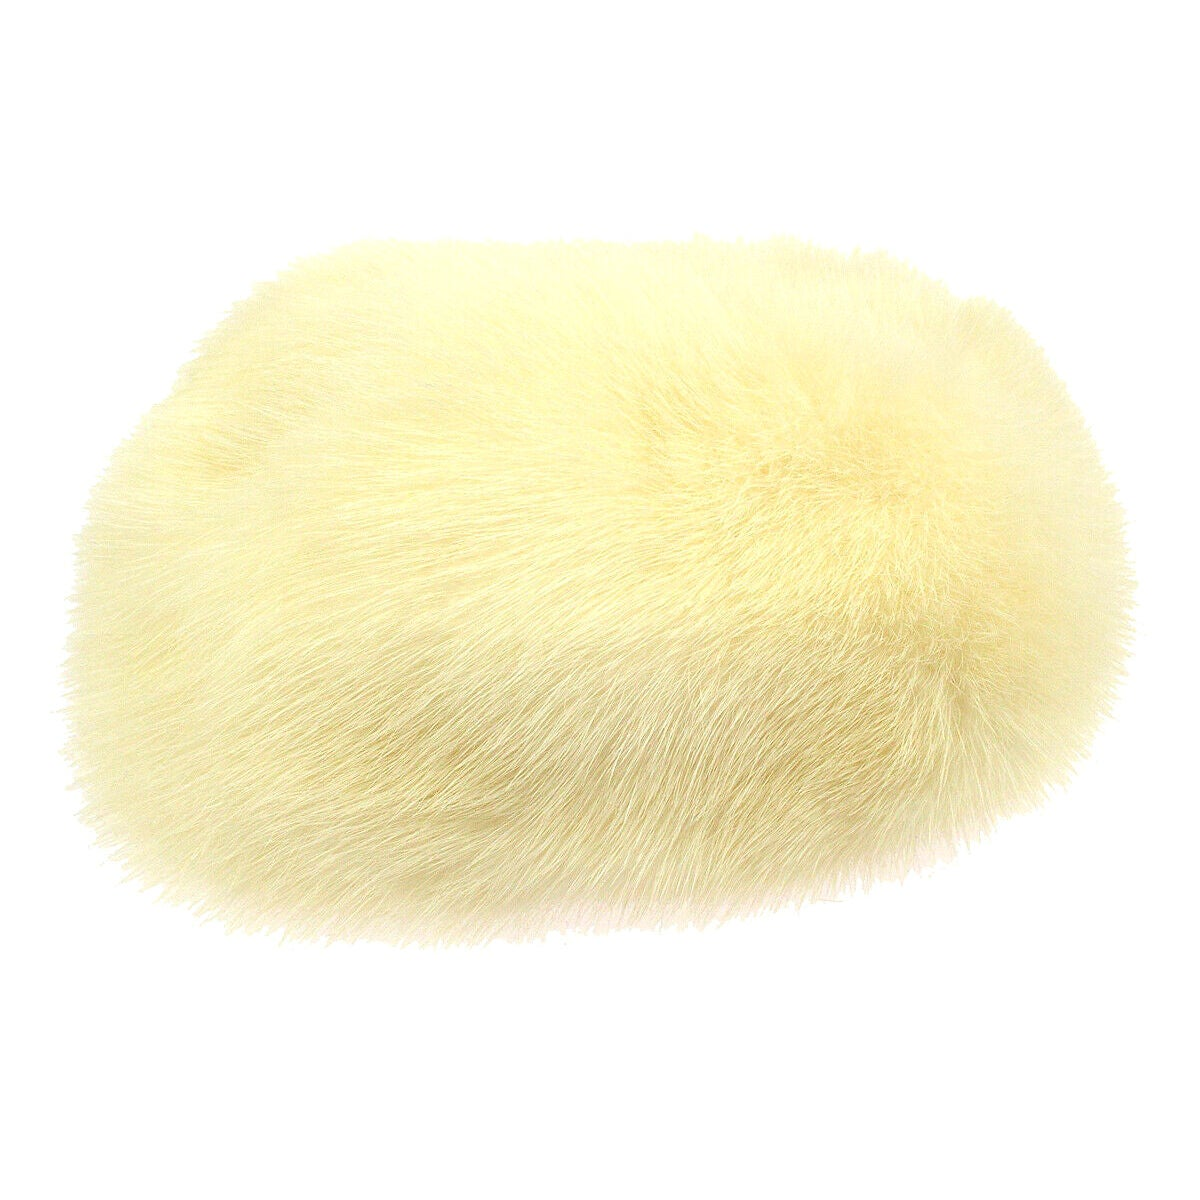 Chanel Round Beret CC Brooch PearI Gold Ivory Cream Fur Winter Hat in Box